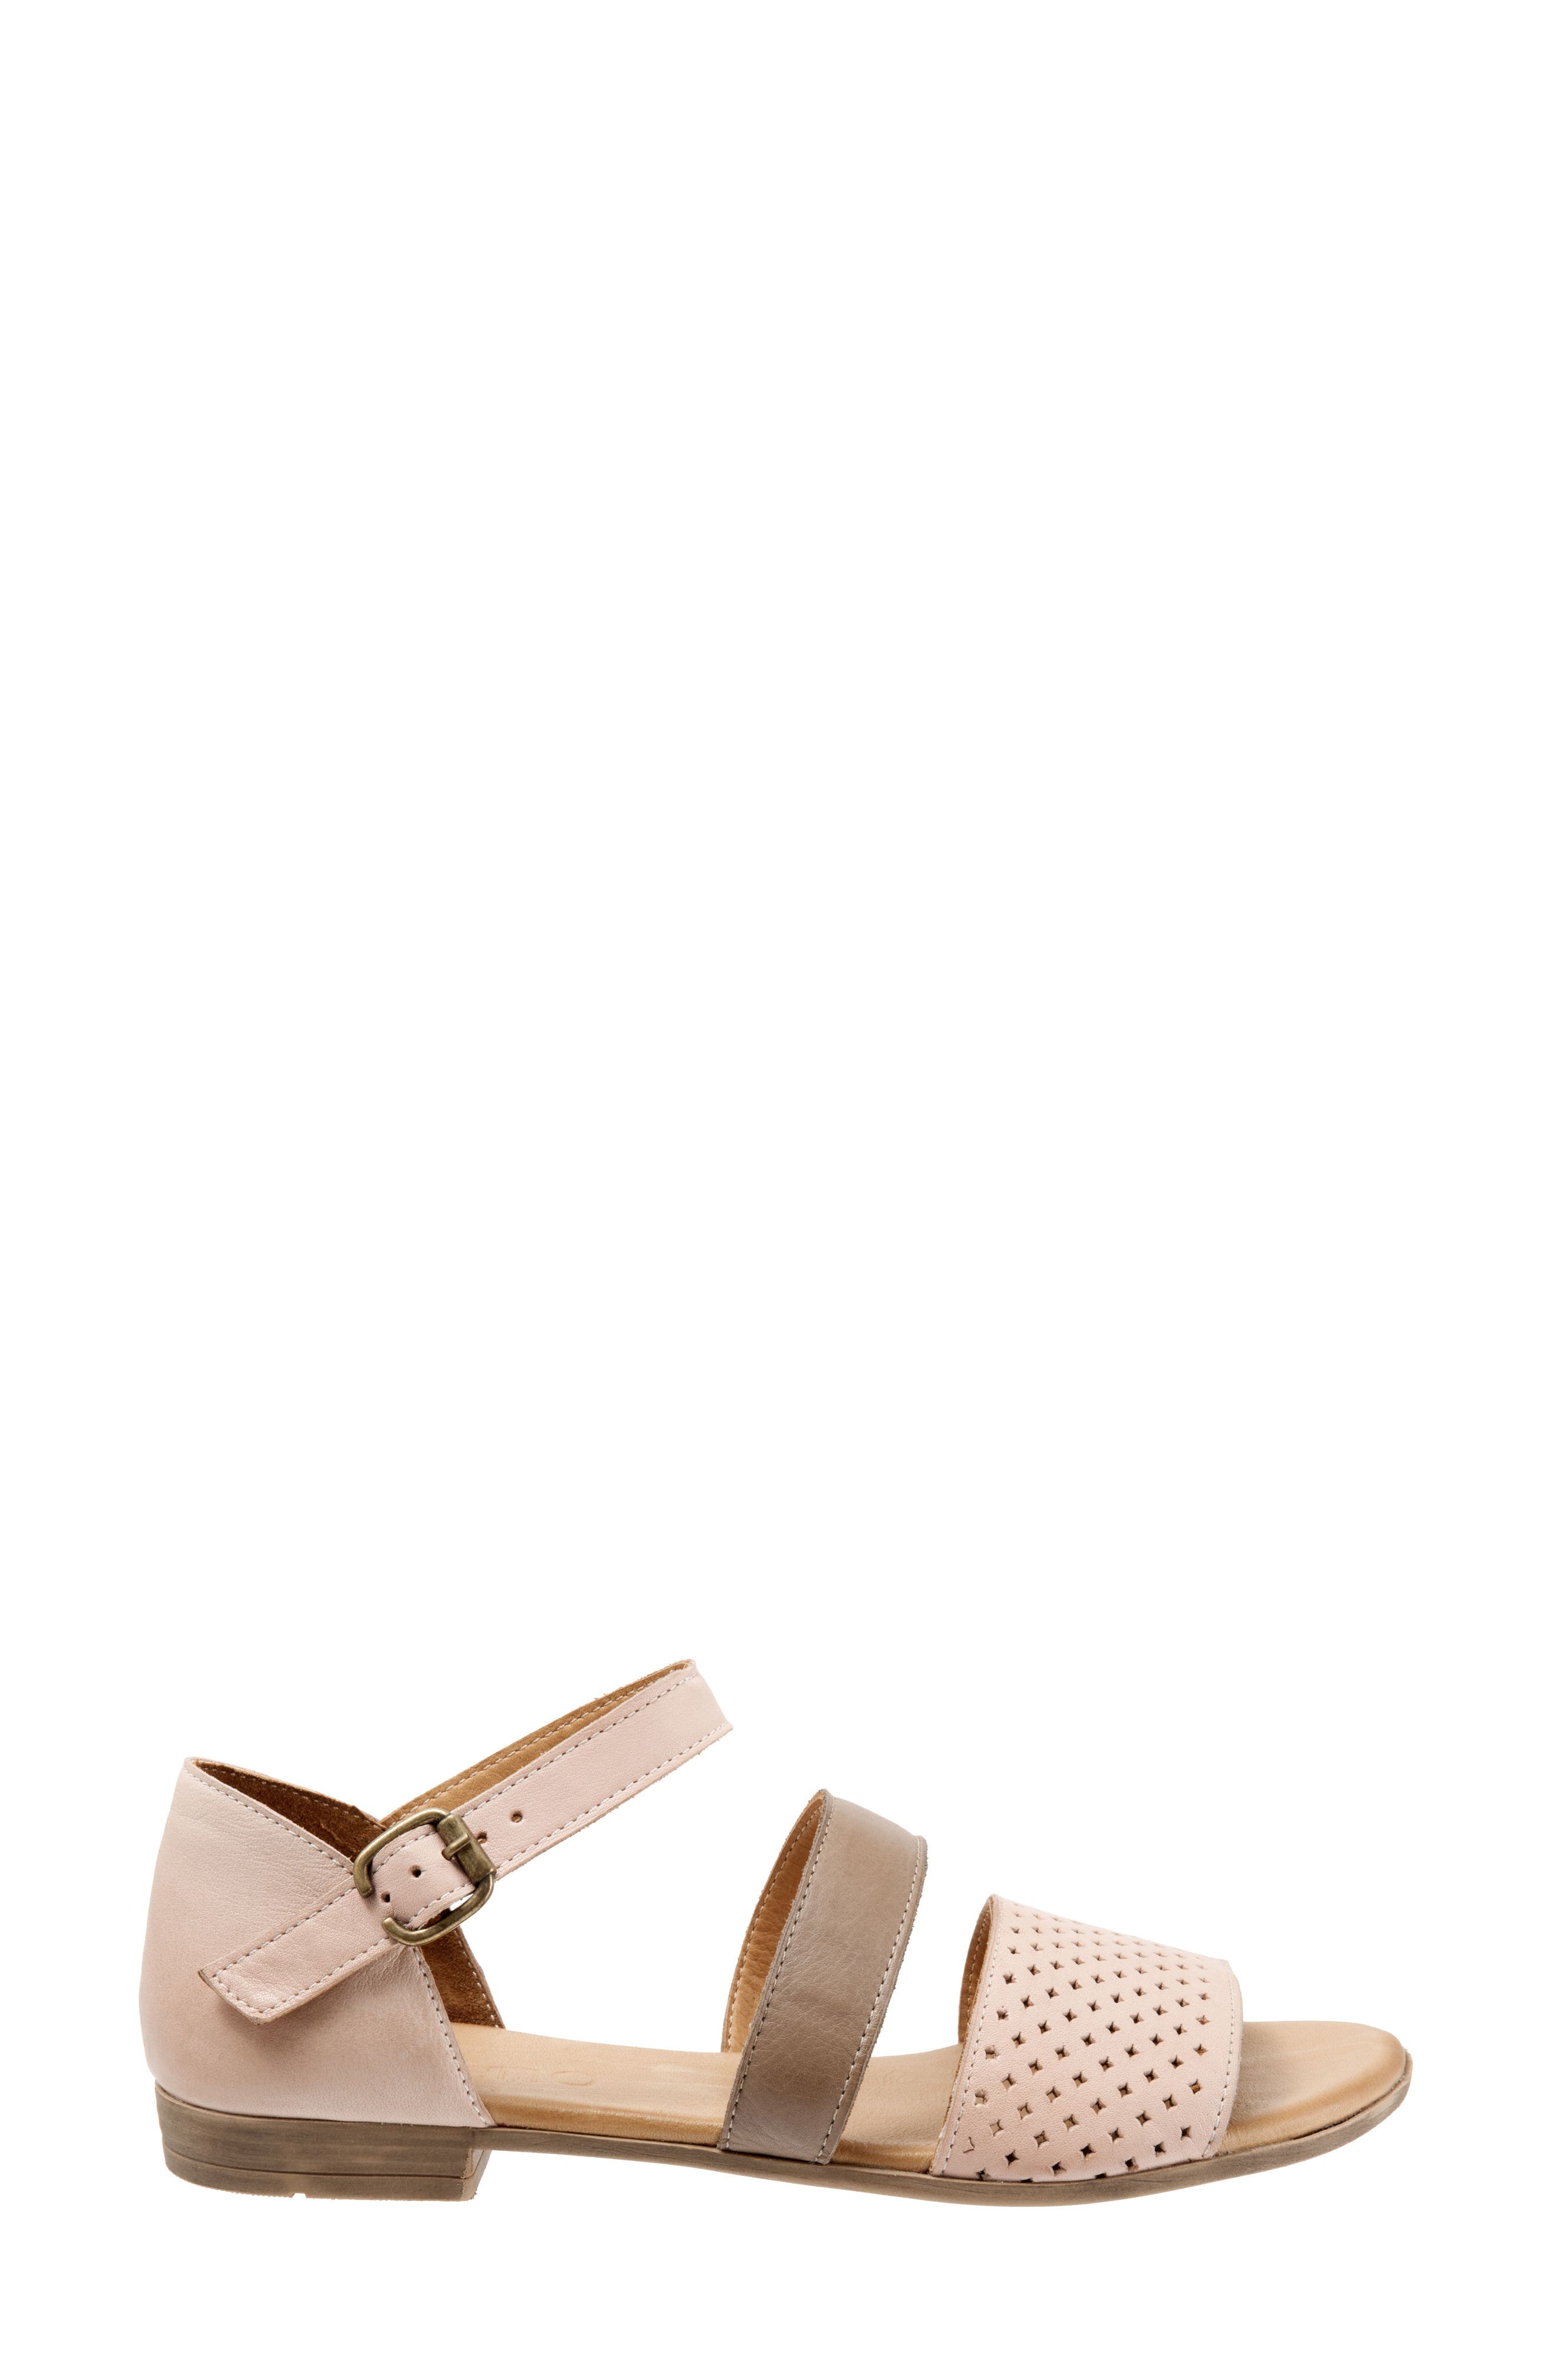 Janet Perforated Flat Sandal,                             Alternate thumbnail 3, color,                             Pale Pink Leather